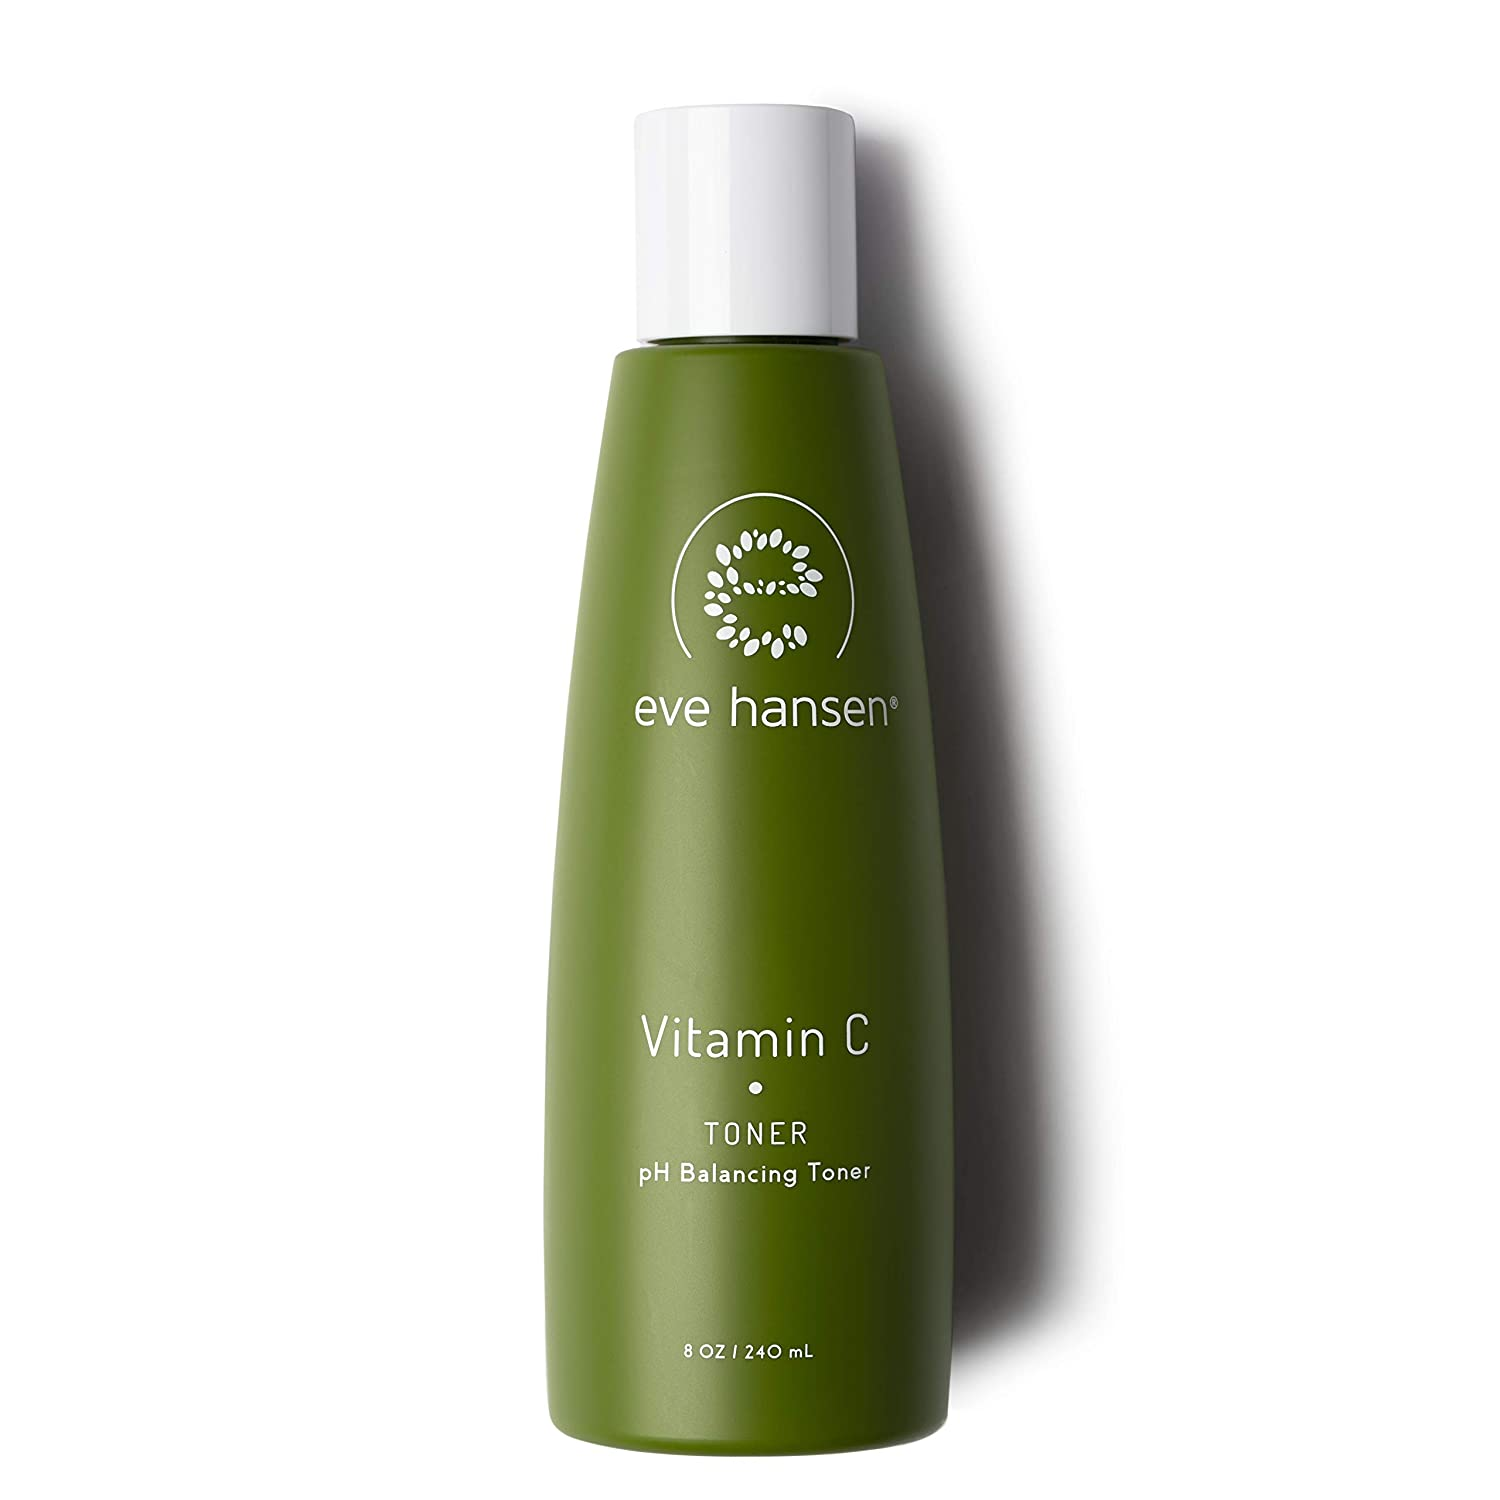 Eve Hansen Dermatologist Tested Vitamin C Face Toner